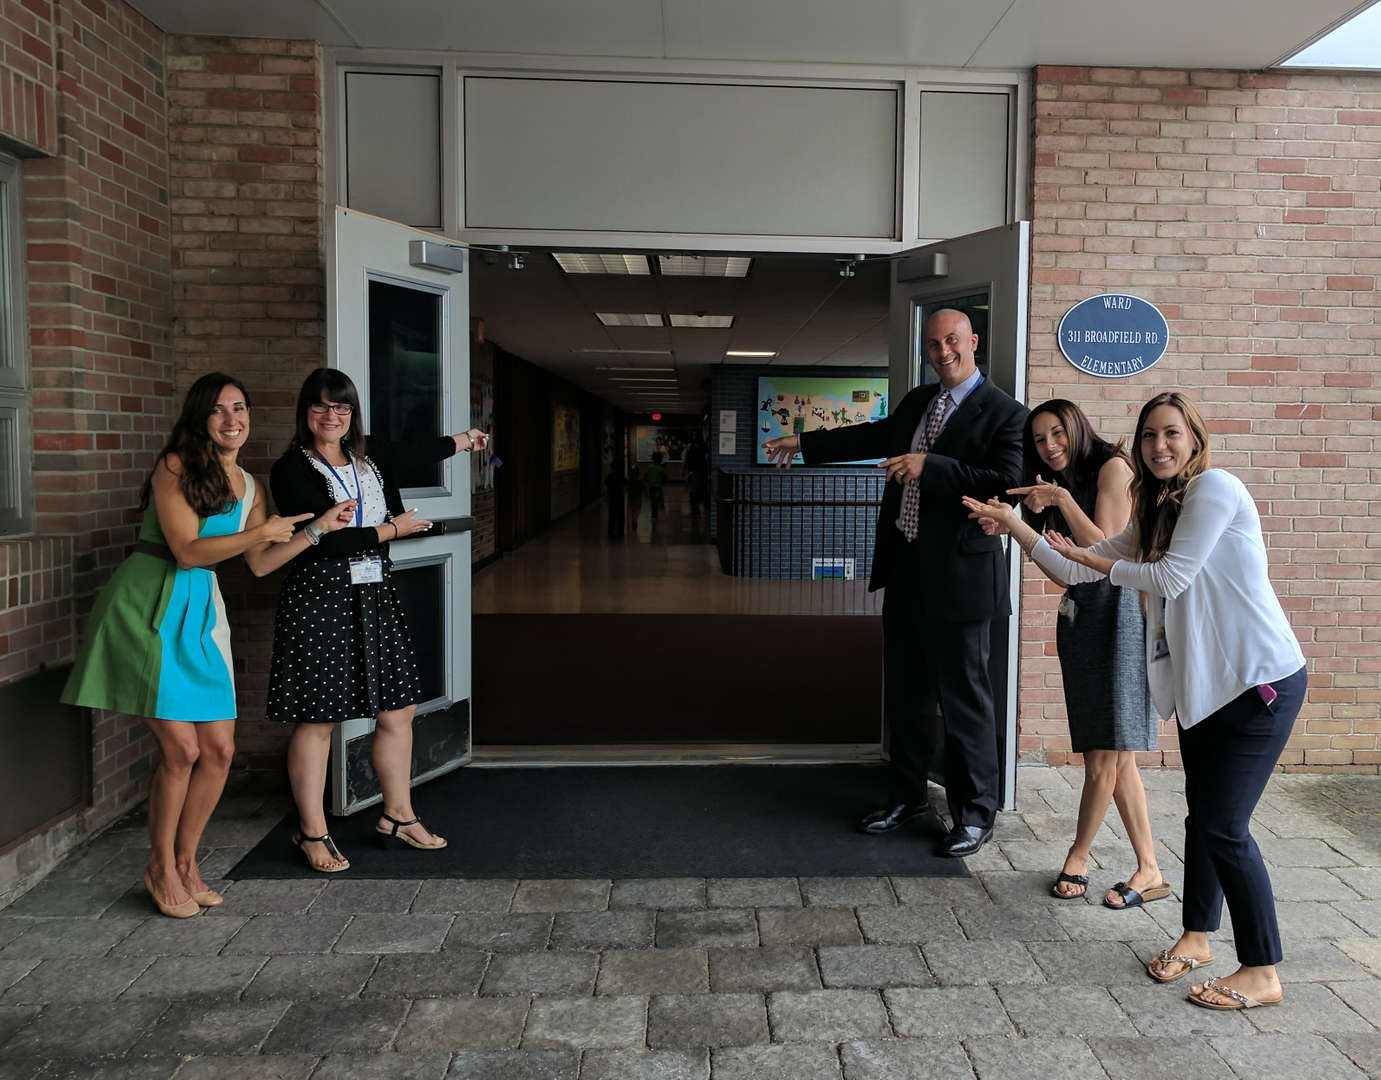 Administrator and teachers welcoming visitors